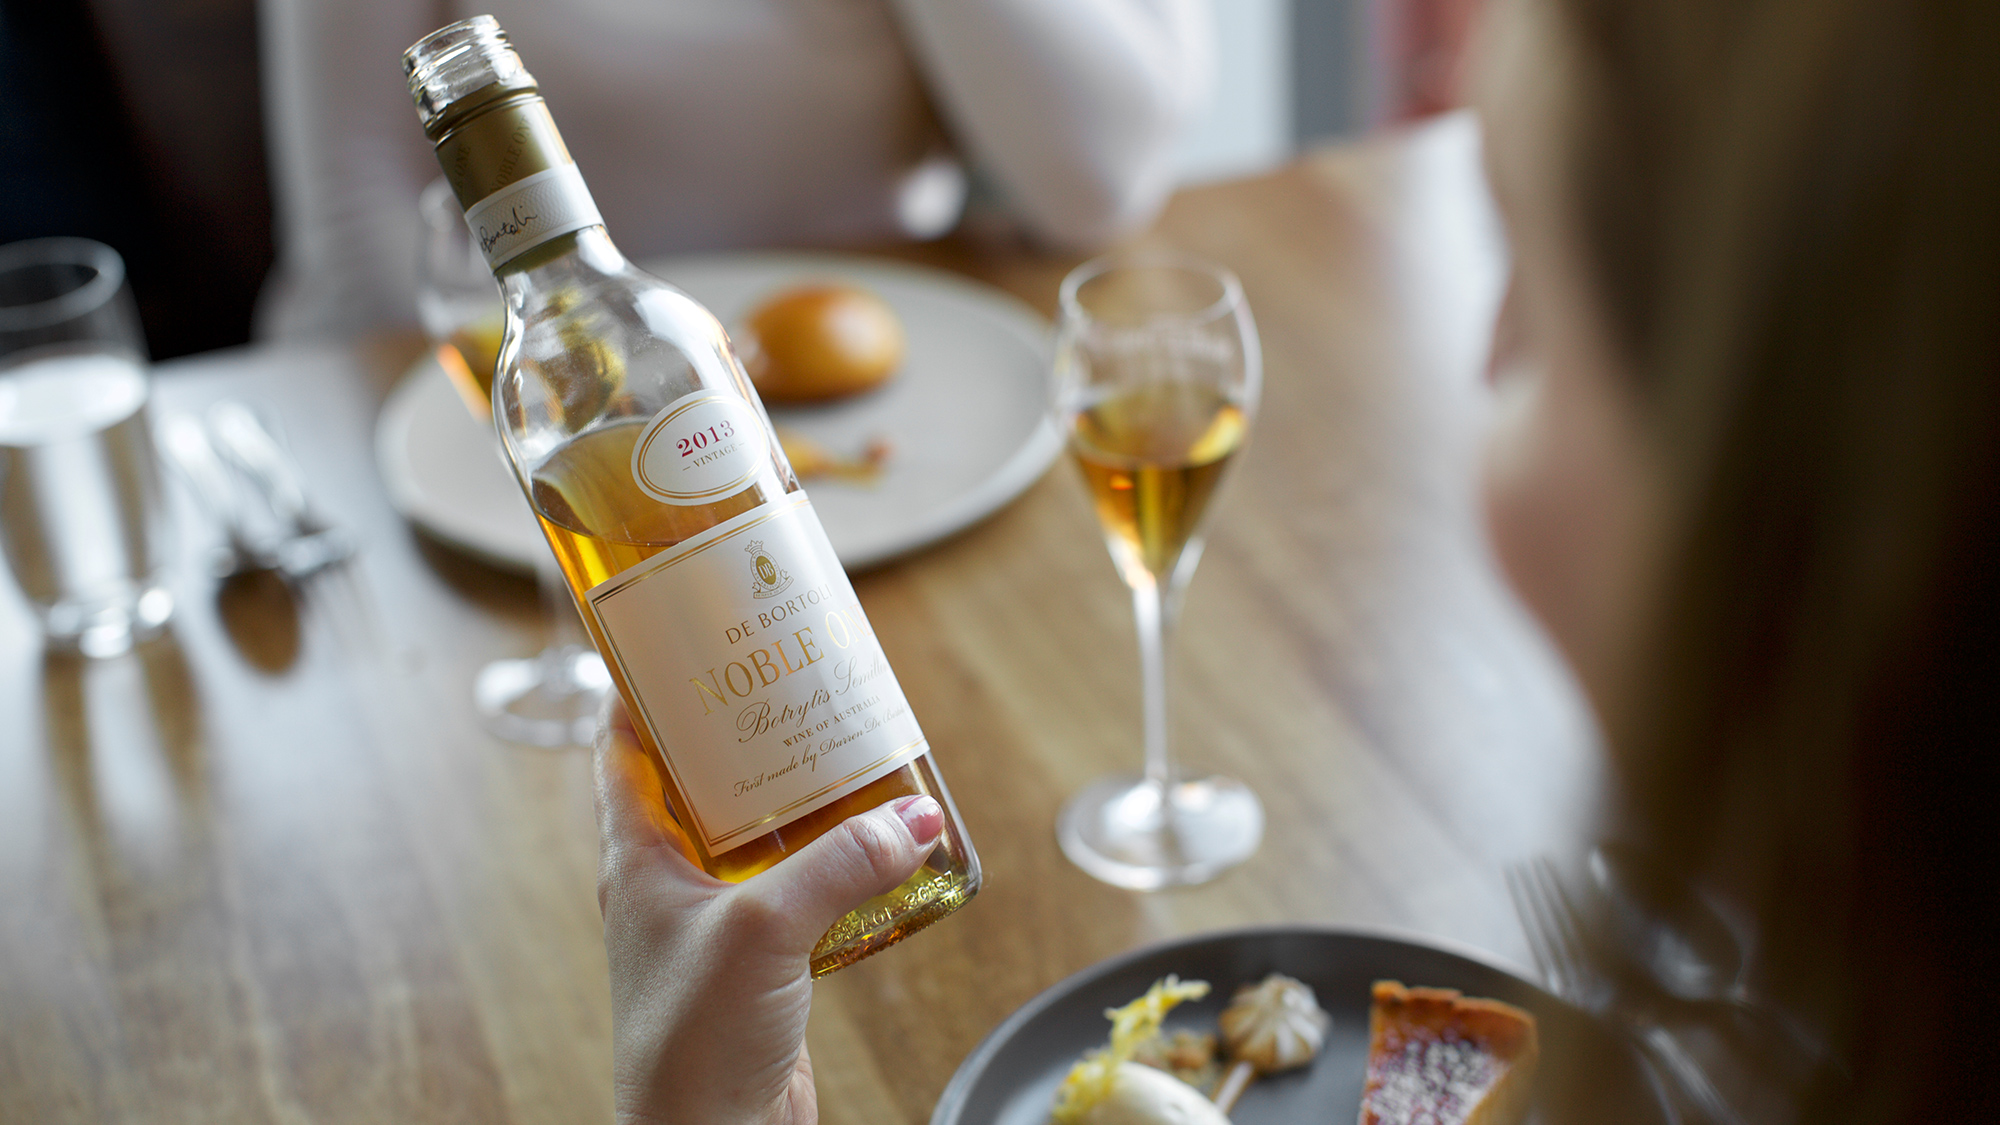 Noble One Botrytis Semillon matches perfectly with creamy desserts